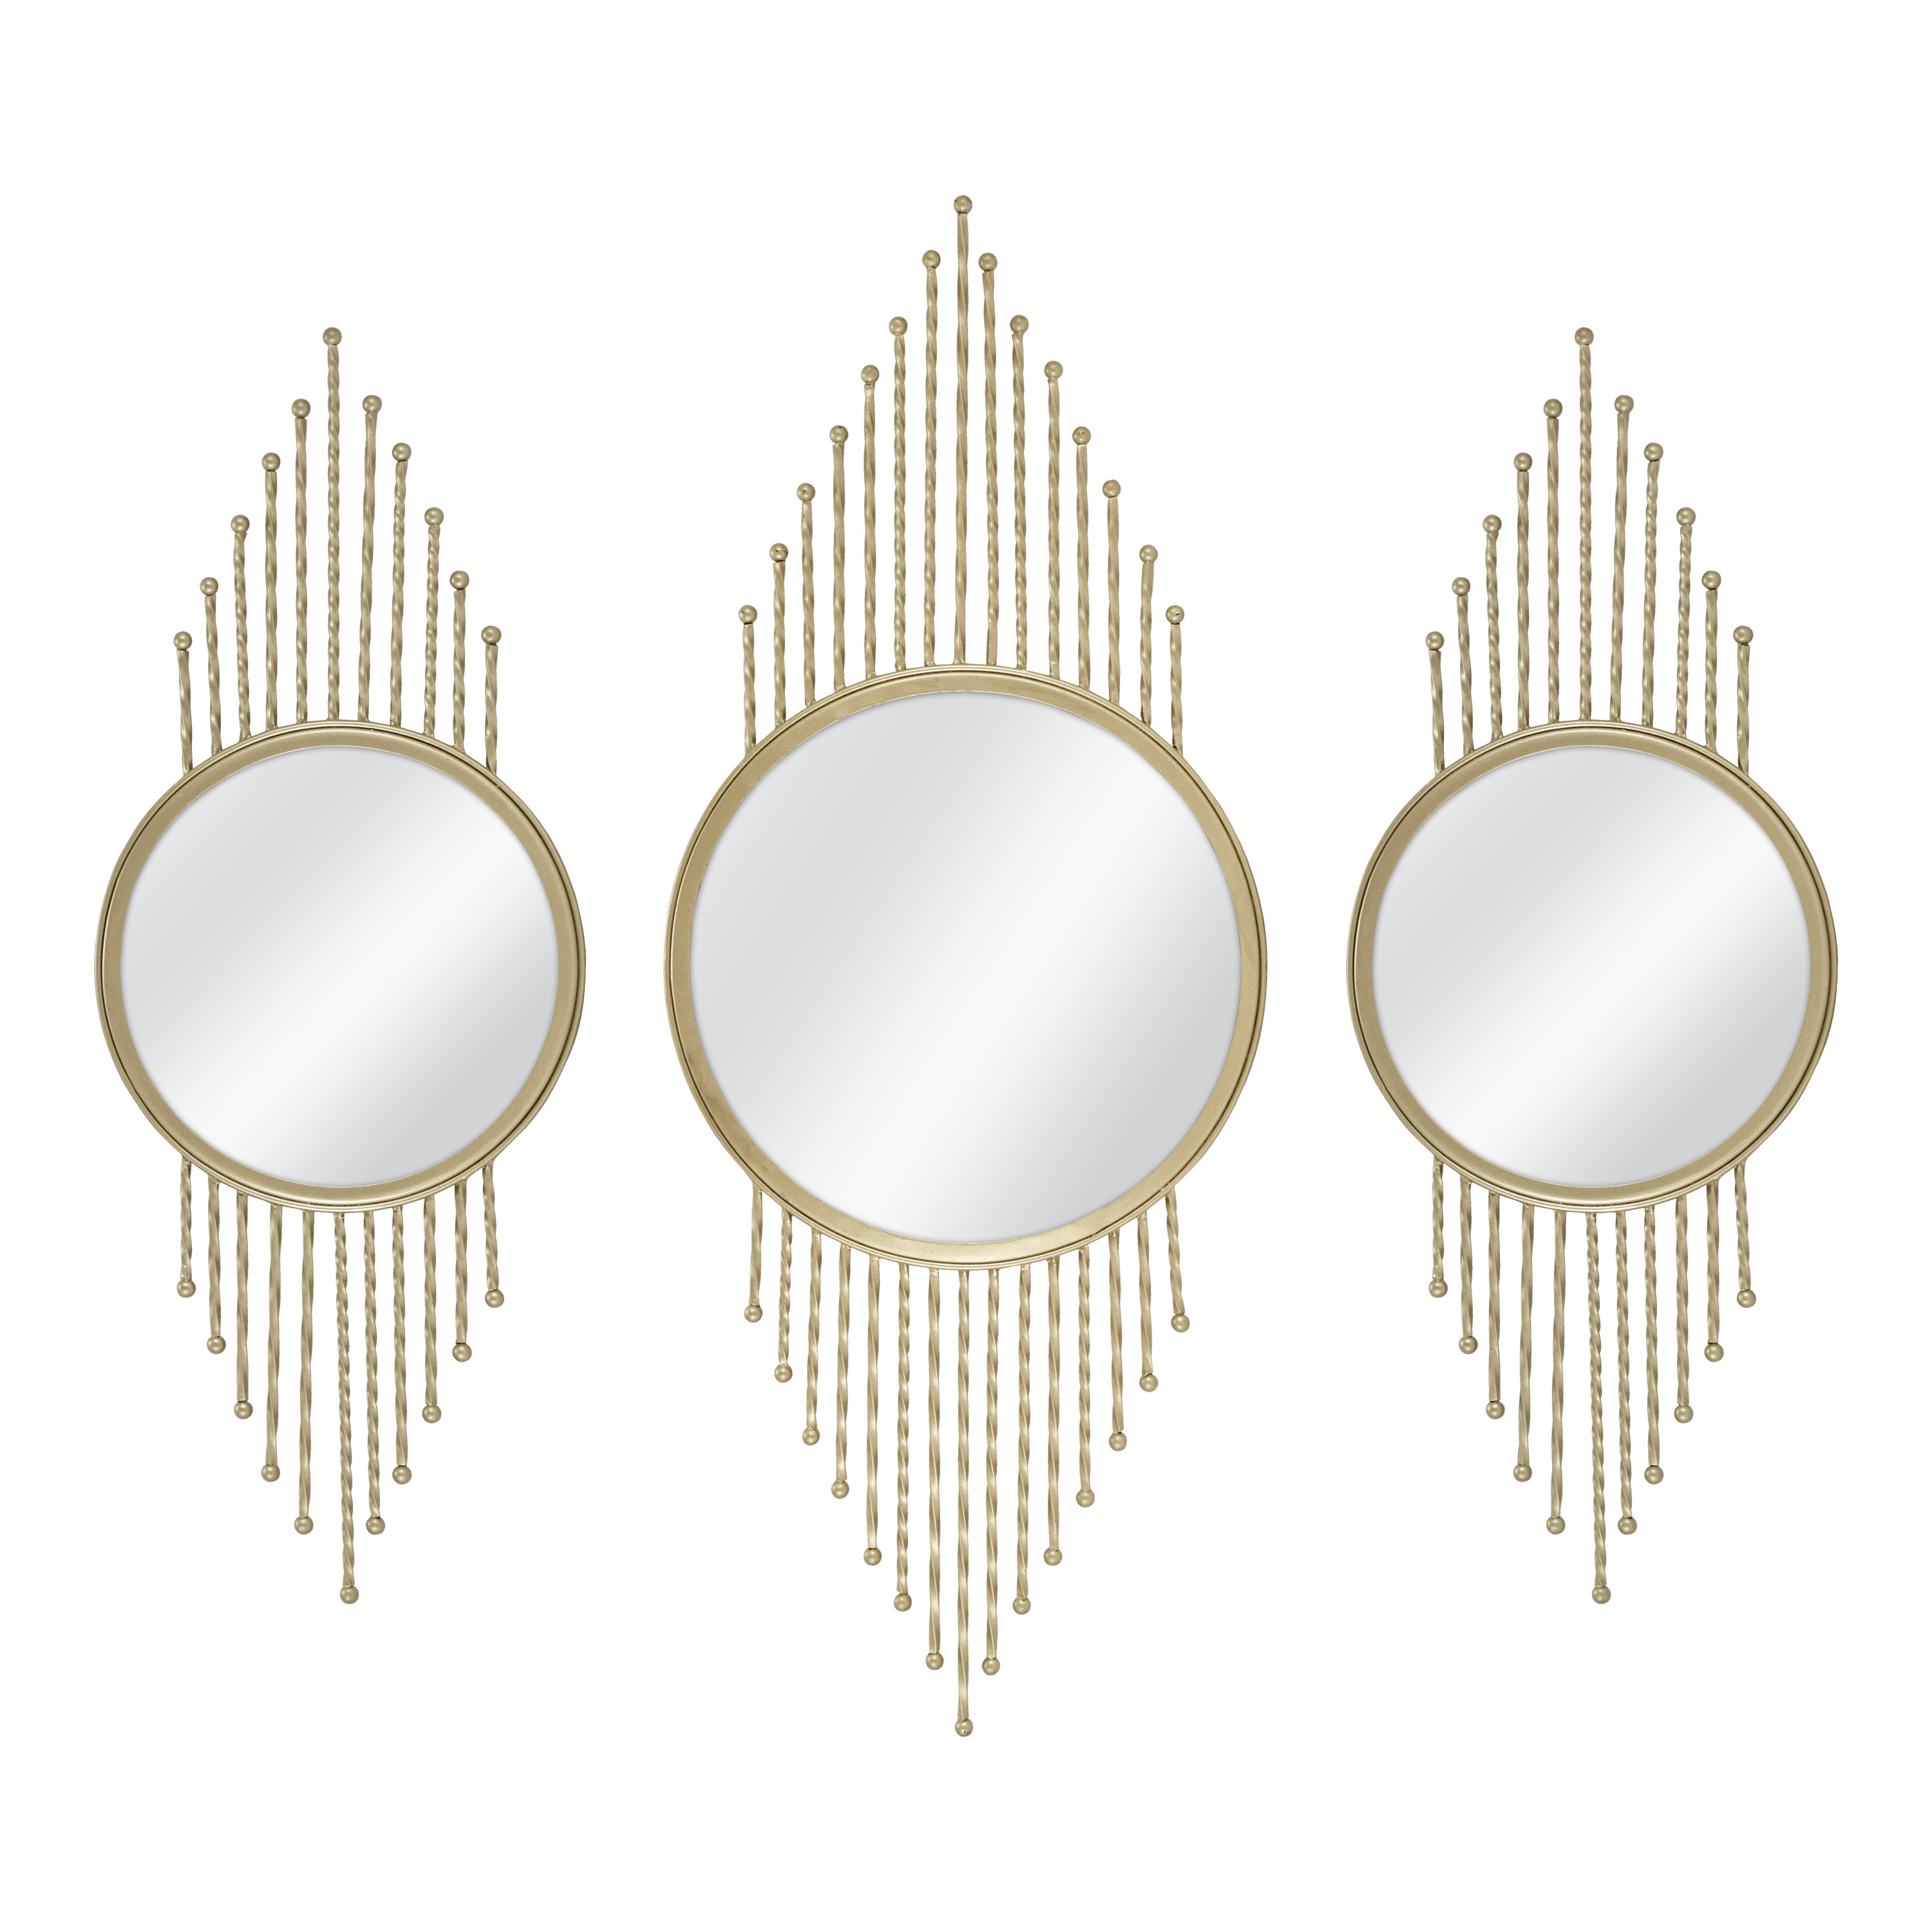 Better Homes & Gardens Gold 3 PC Metal Mirror Trio by MCS Industries, Inc.